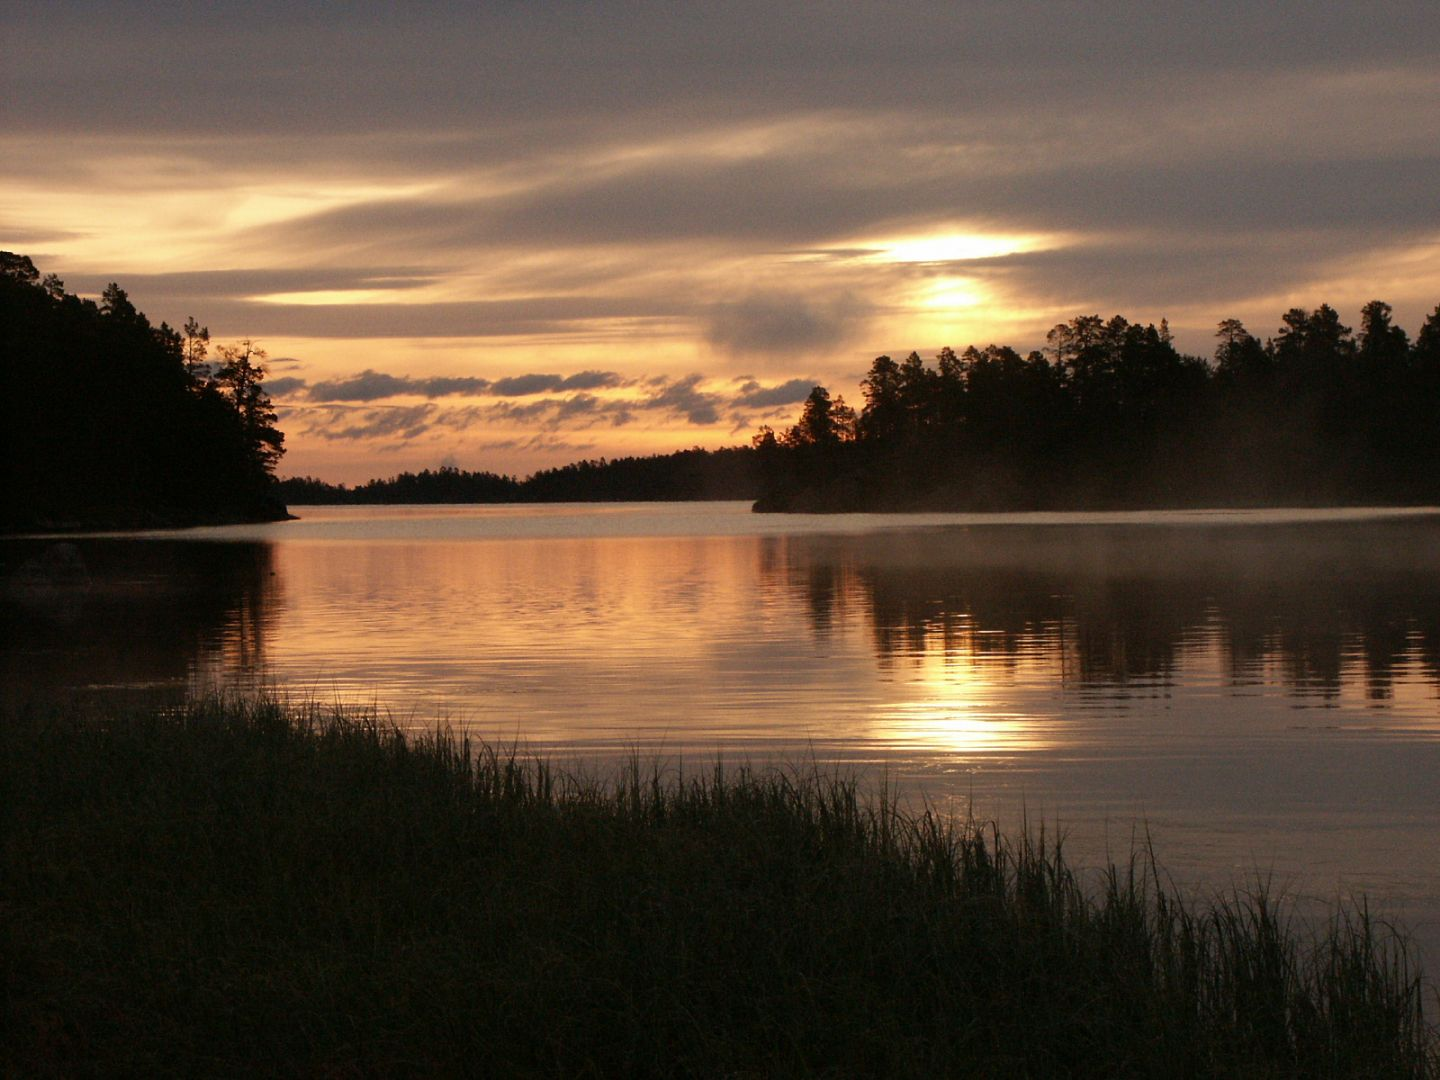 Sunrise over Lapland waters